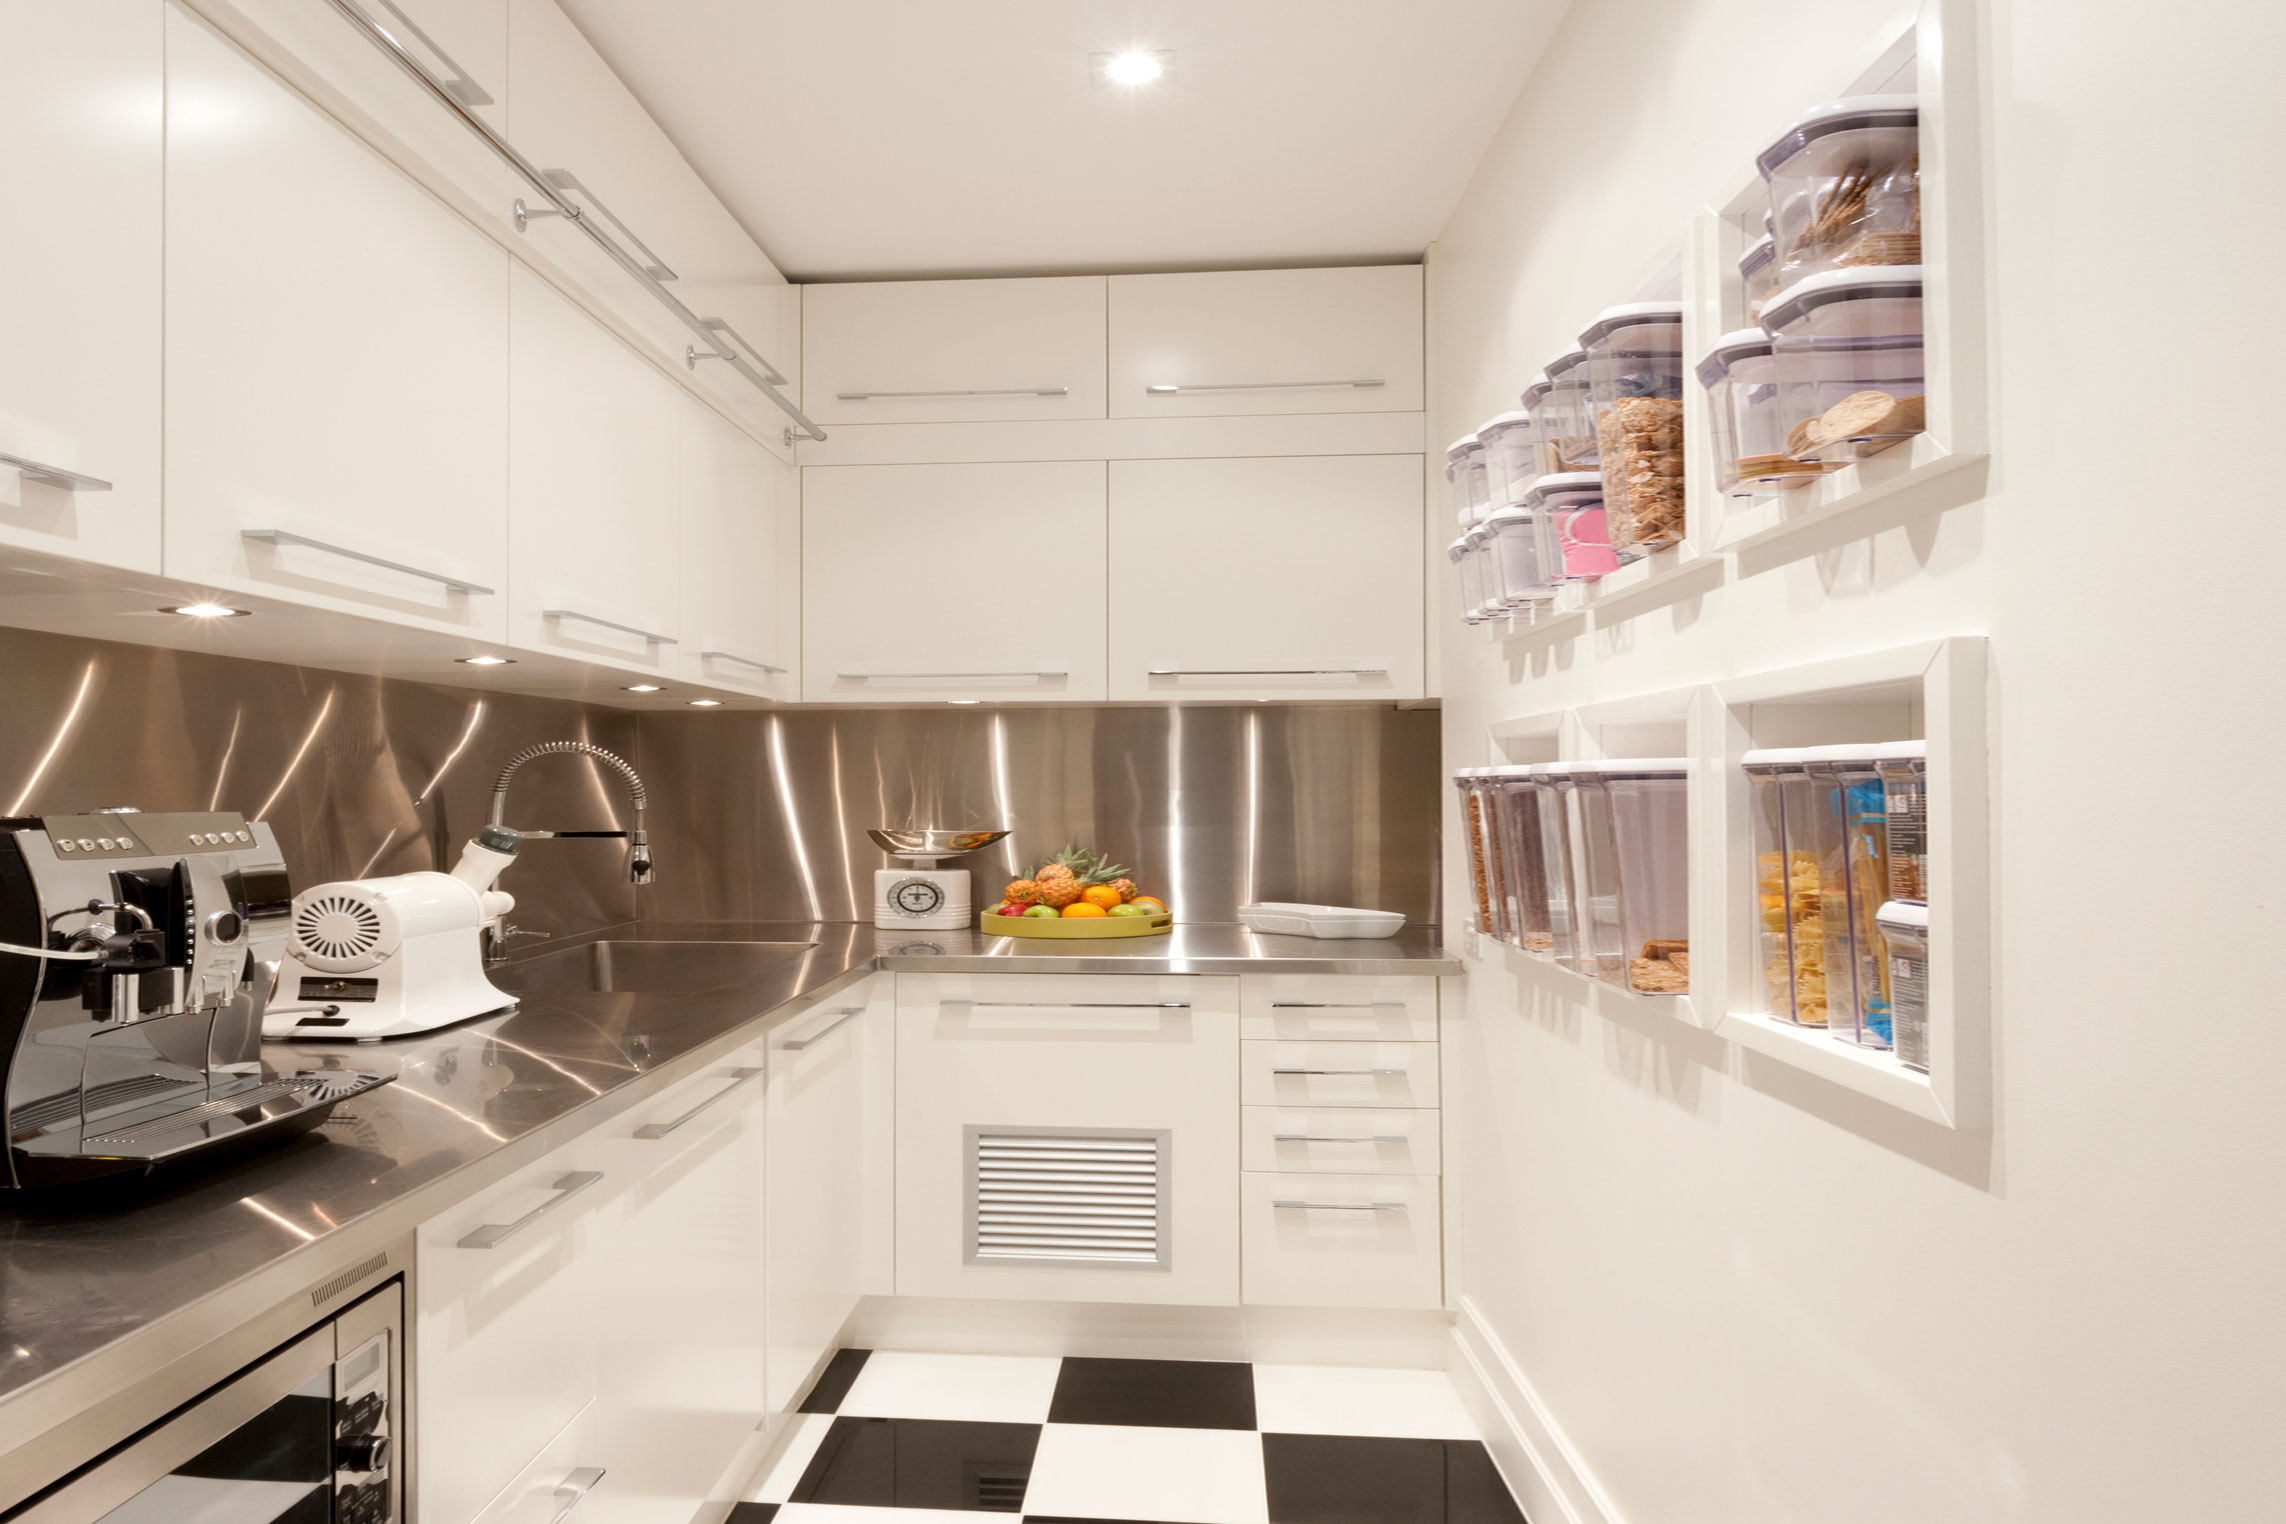 19 Clever Space Saving Ideas Tips For Small Kitchens Lovetoknow